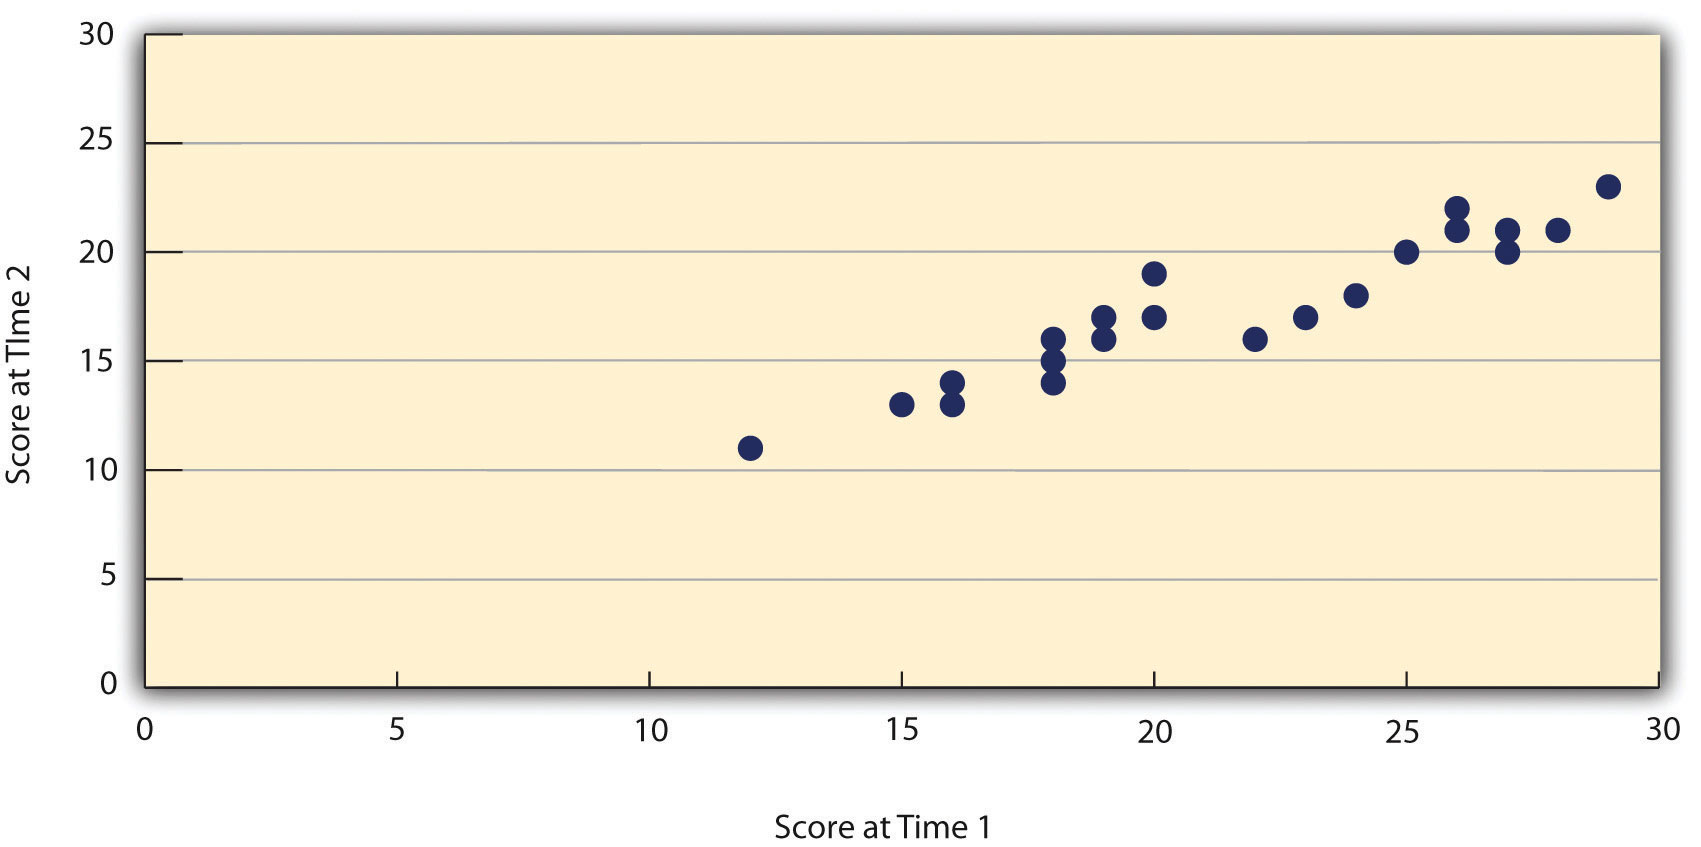 Test-Retest Correlation Between Two Sets of Scores of Several College Students on the Rosenberg Self-Esteem Scale, Given Two Times a Week Apart